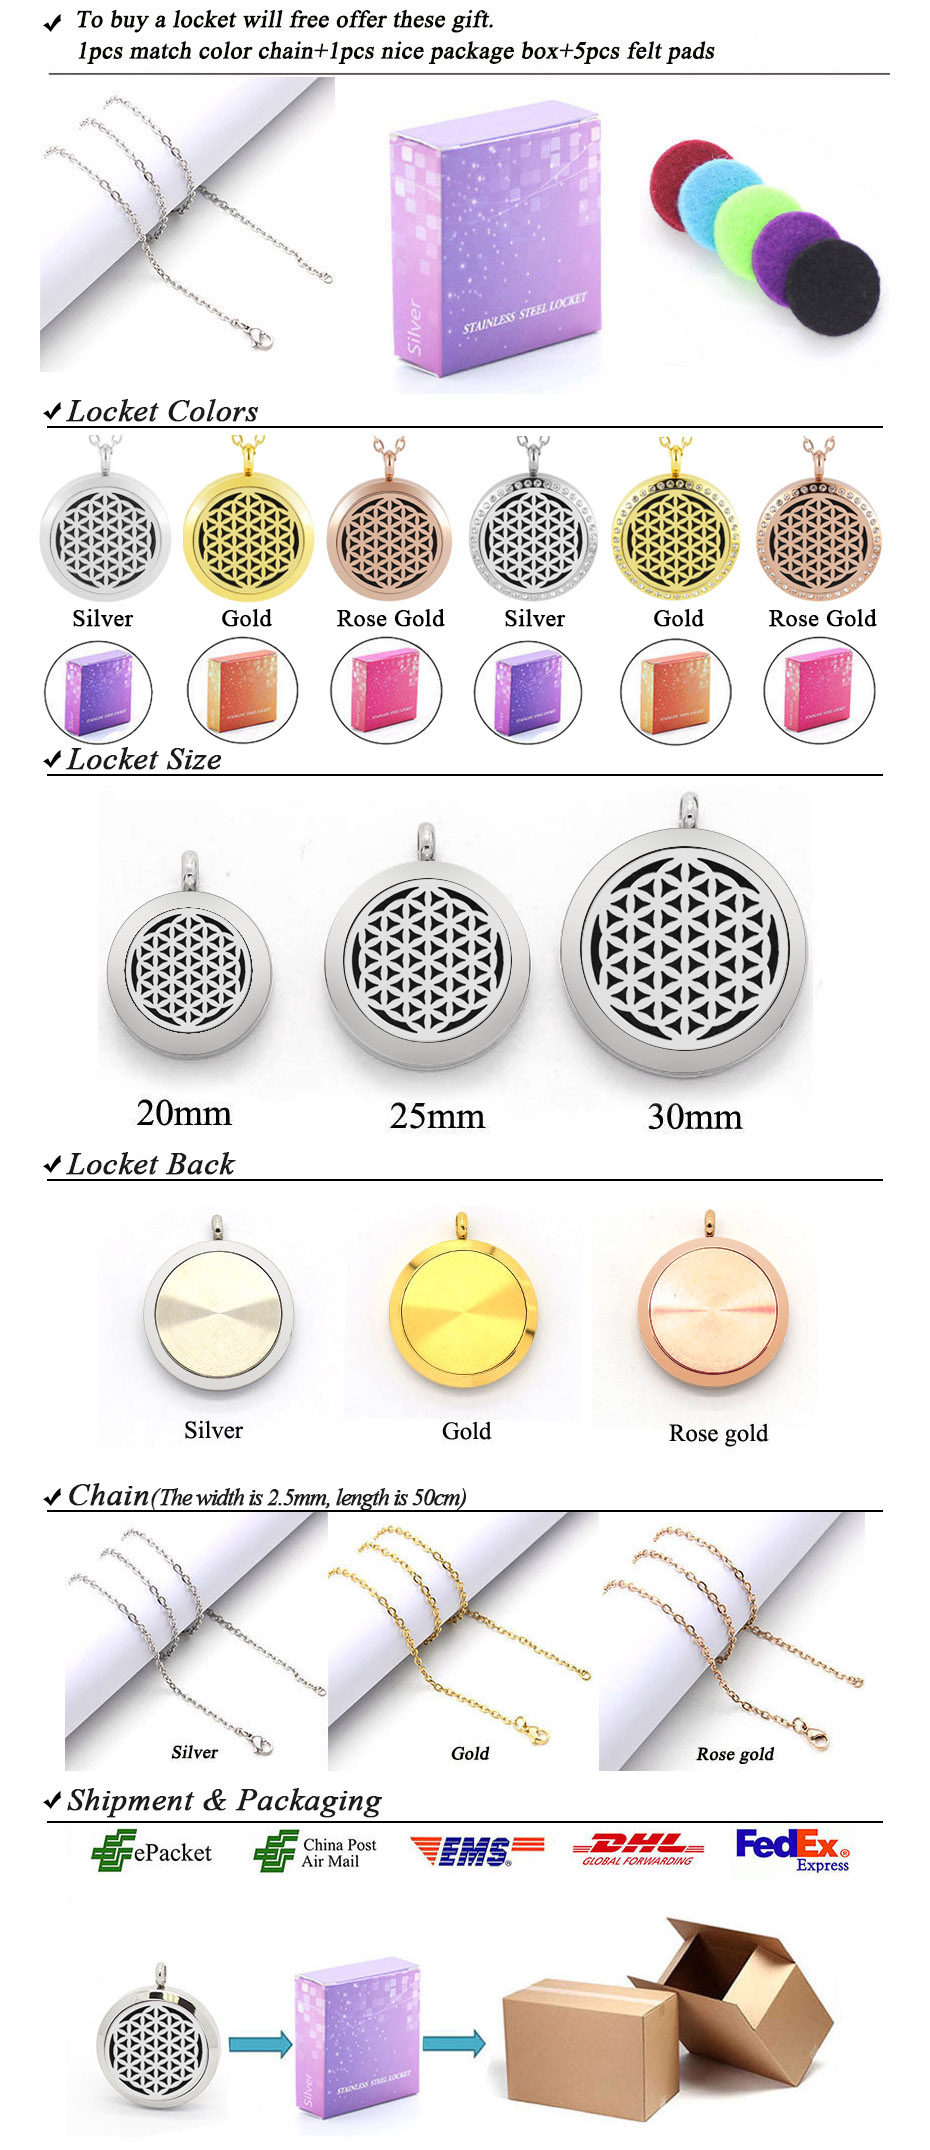 flower of life diffuser necklace silver gold rose gold 20mm 25mm 30mm locket jewelry -118